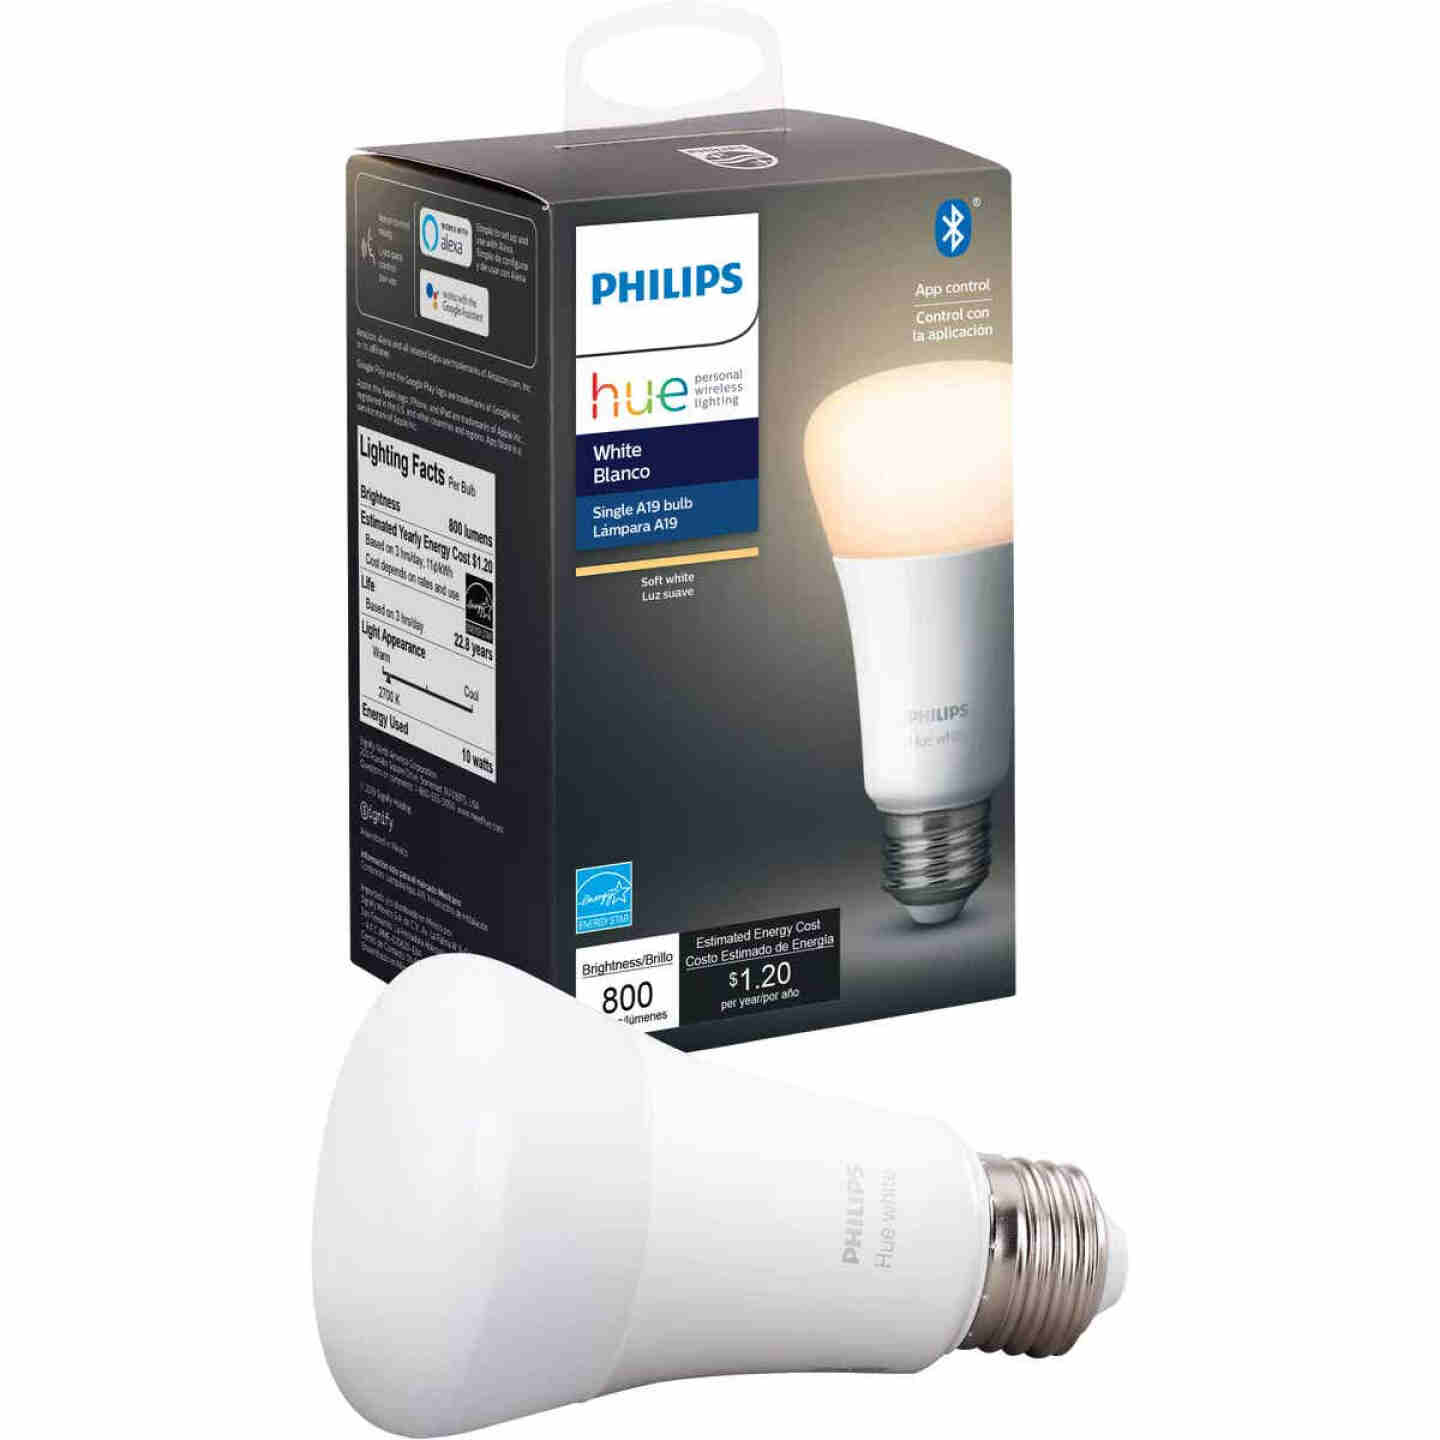 Philips Hue 60W Equivalent Warm White A19 Medium Dimmable LED Smart Light Bulb Image 1